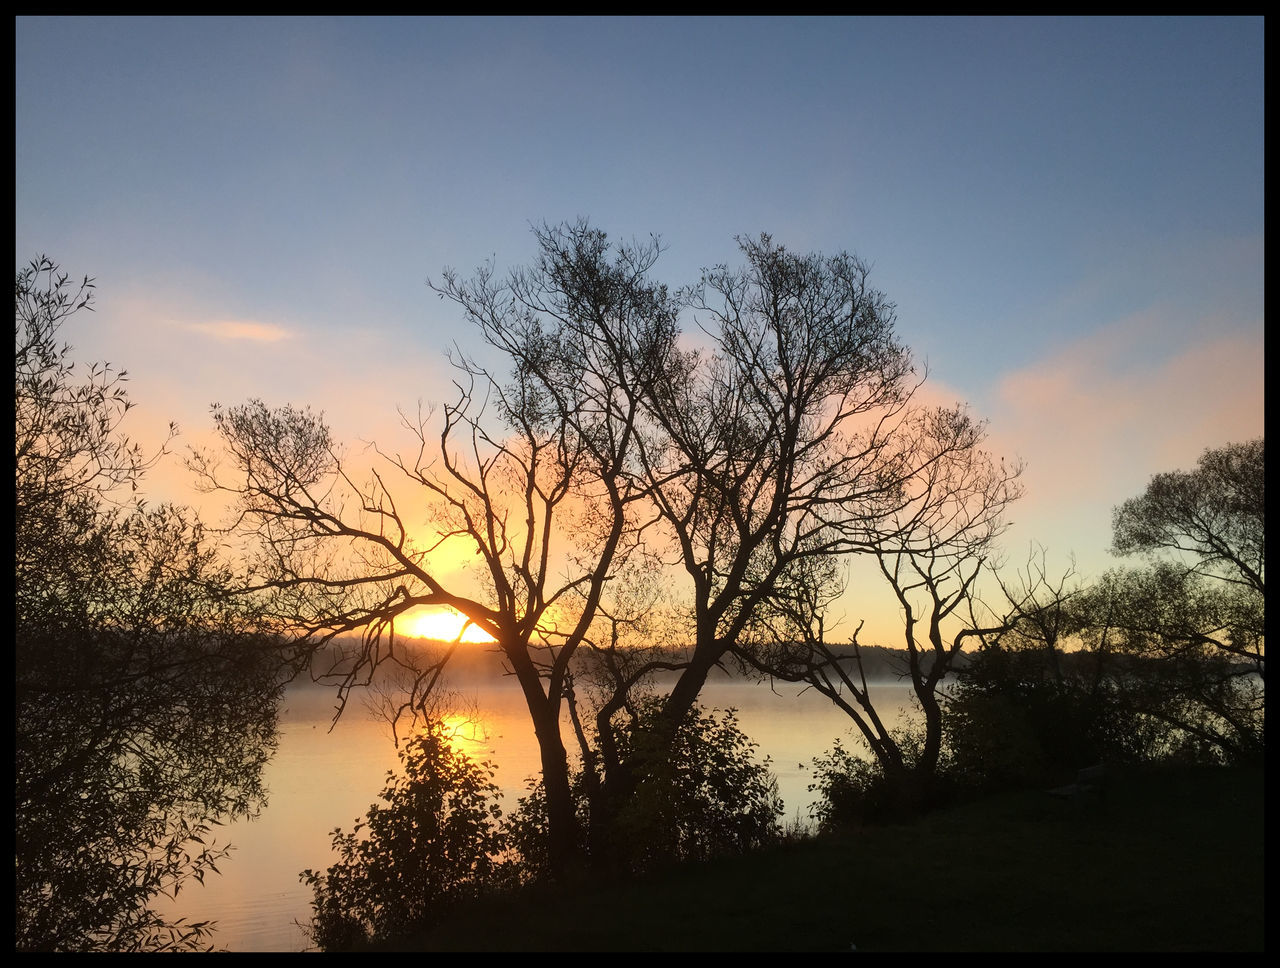 tree, sunset, tranquility, tranquil scene, beauty in nature, silhouette, scenics, nature, orange color, sky, water, lake, majestic, outdoors, idyllic, reflection, no people, bare tree, branch, day